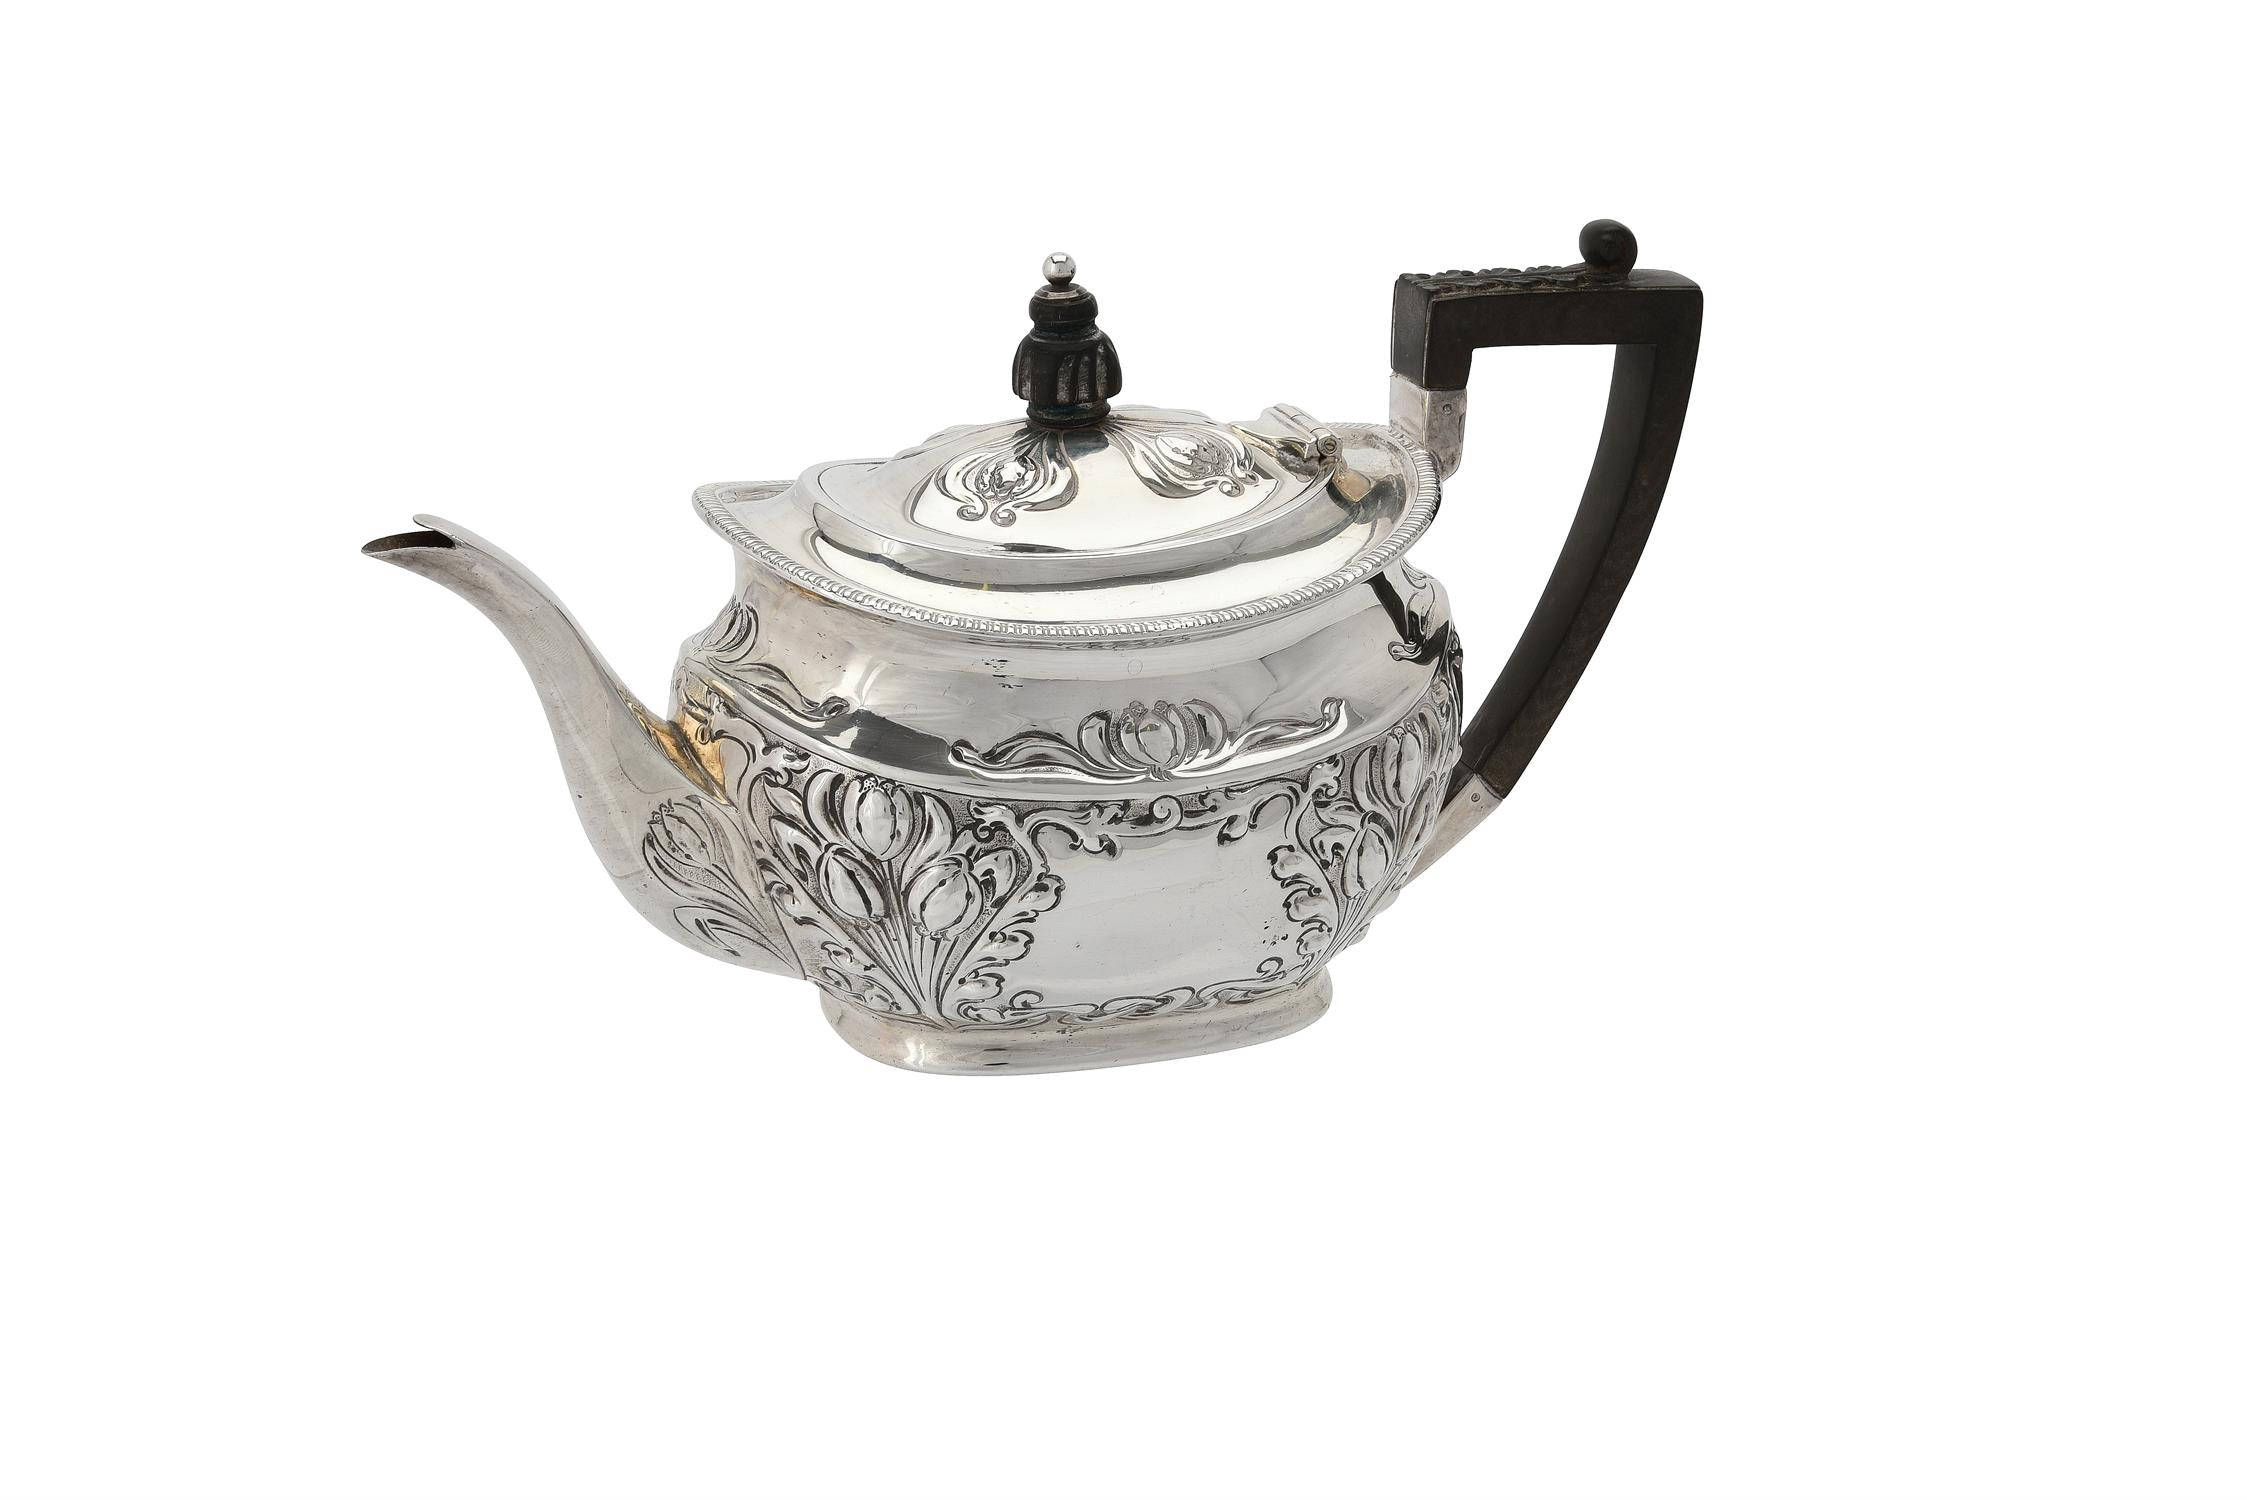 An Edwardian silver oval tea pot by Atkin Brothers